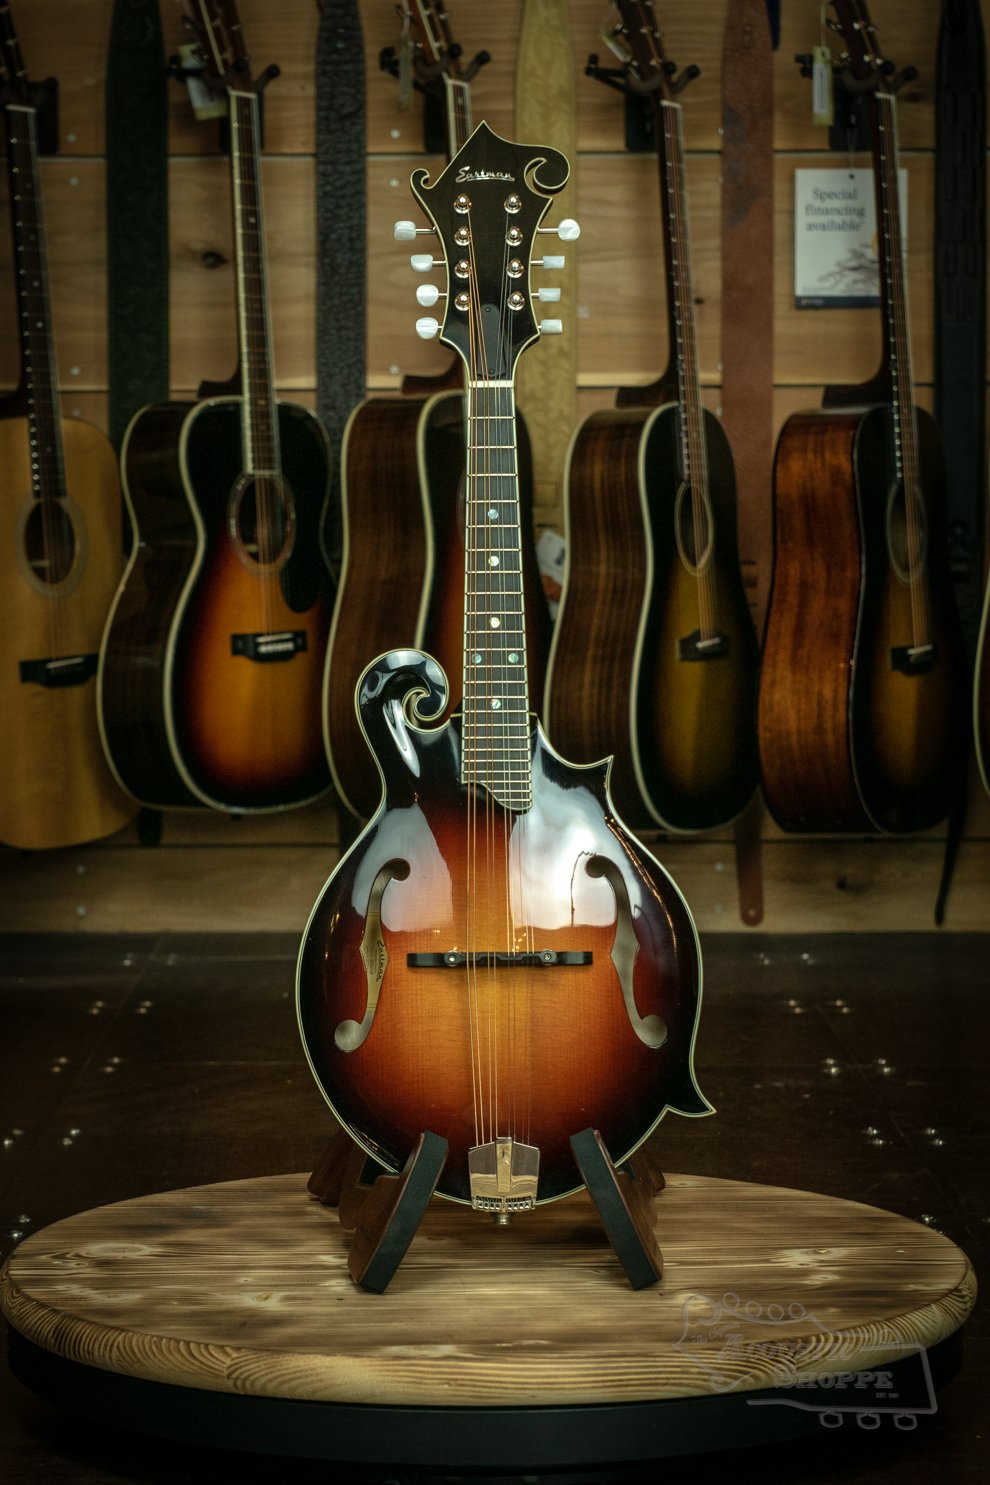 Eastman MD615-SB F-Style Mandolin #16752444 Sunburst